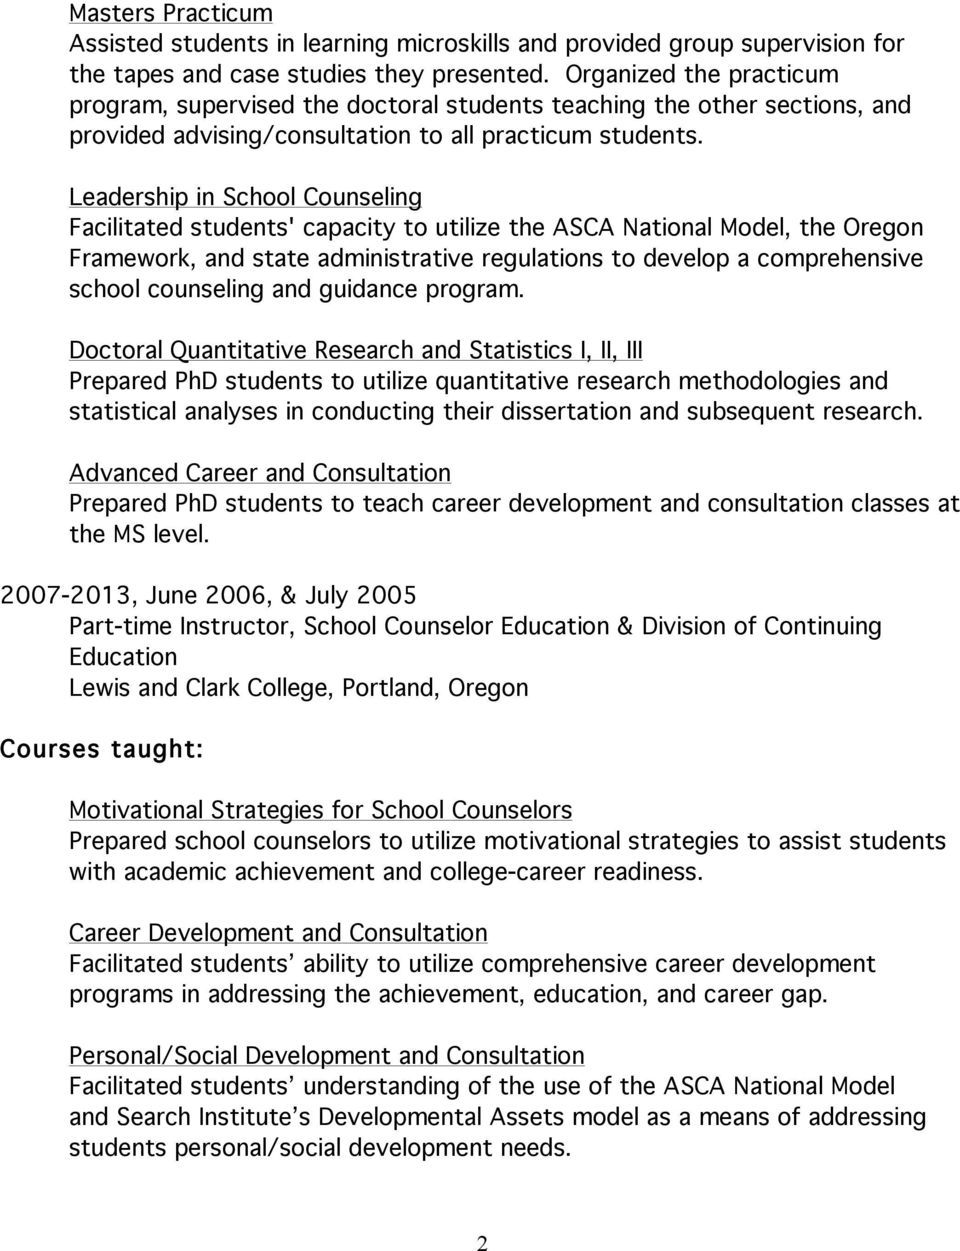 Leadership in School Counseling Facilitated students' capacity to utilize the ASCA National Model, the Oregon Framework, and state administrative regulations to develop a comprehensive school